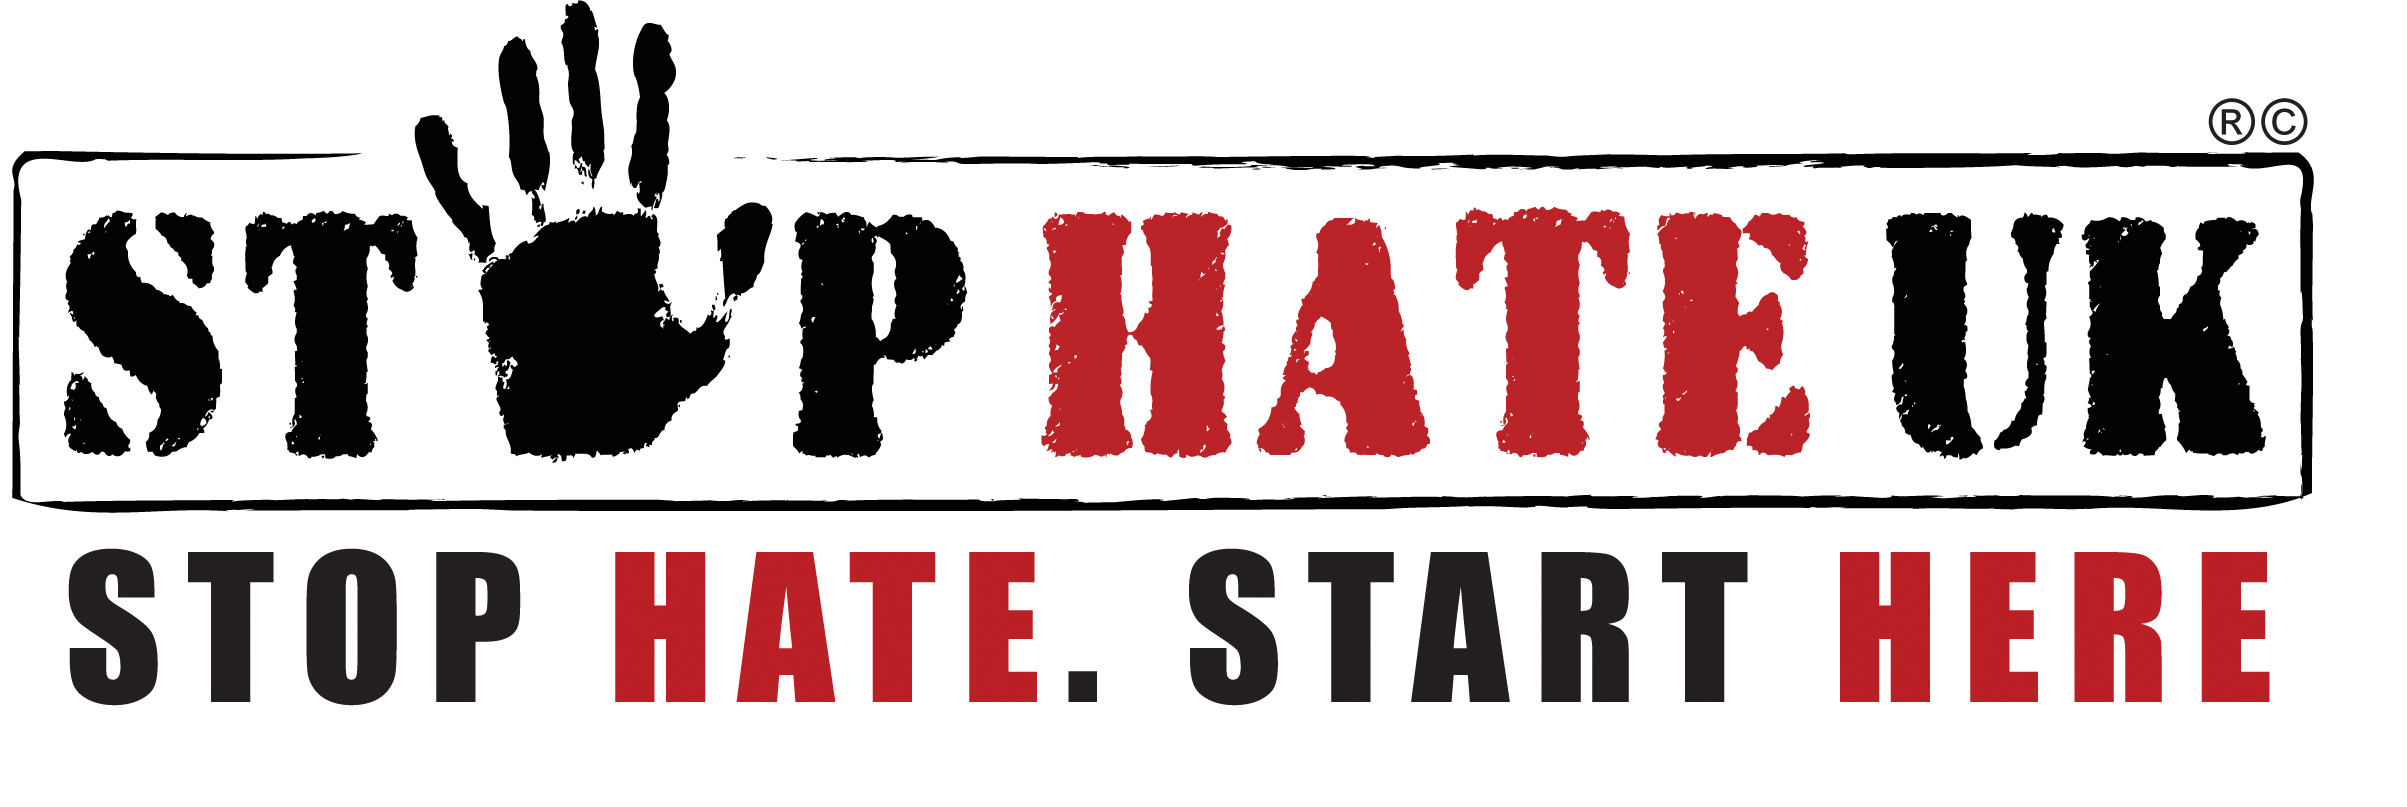 Stop Hate UK, supported by Shezad Dawood